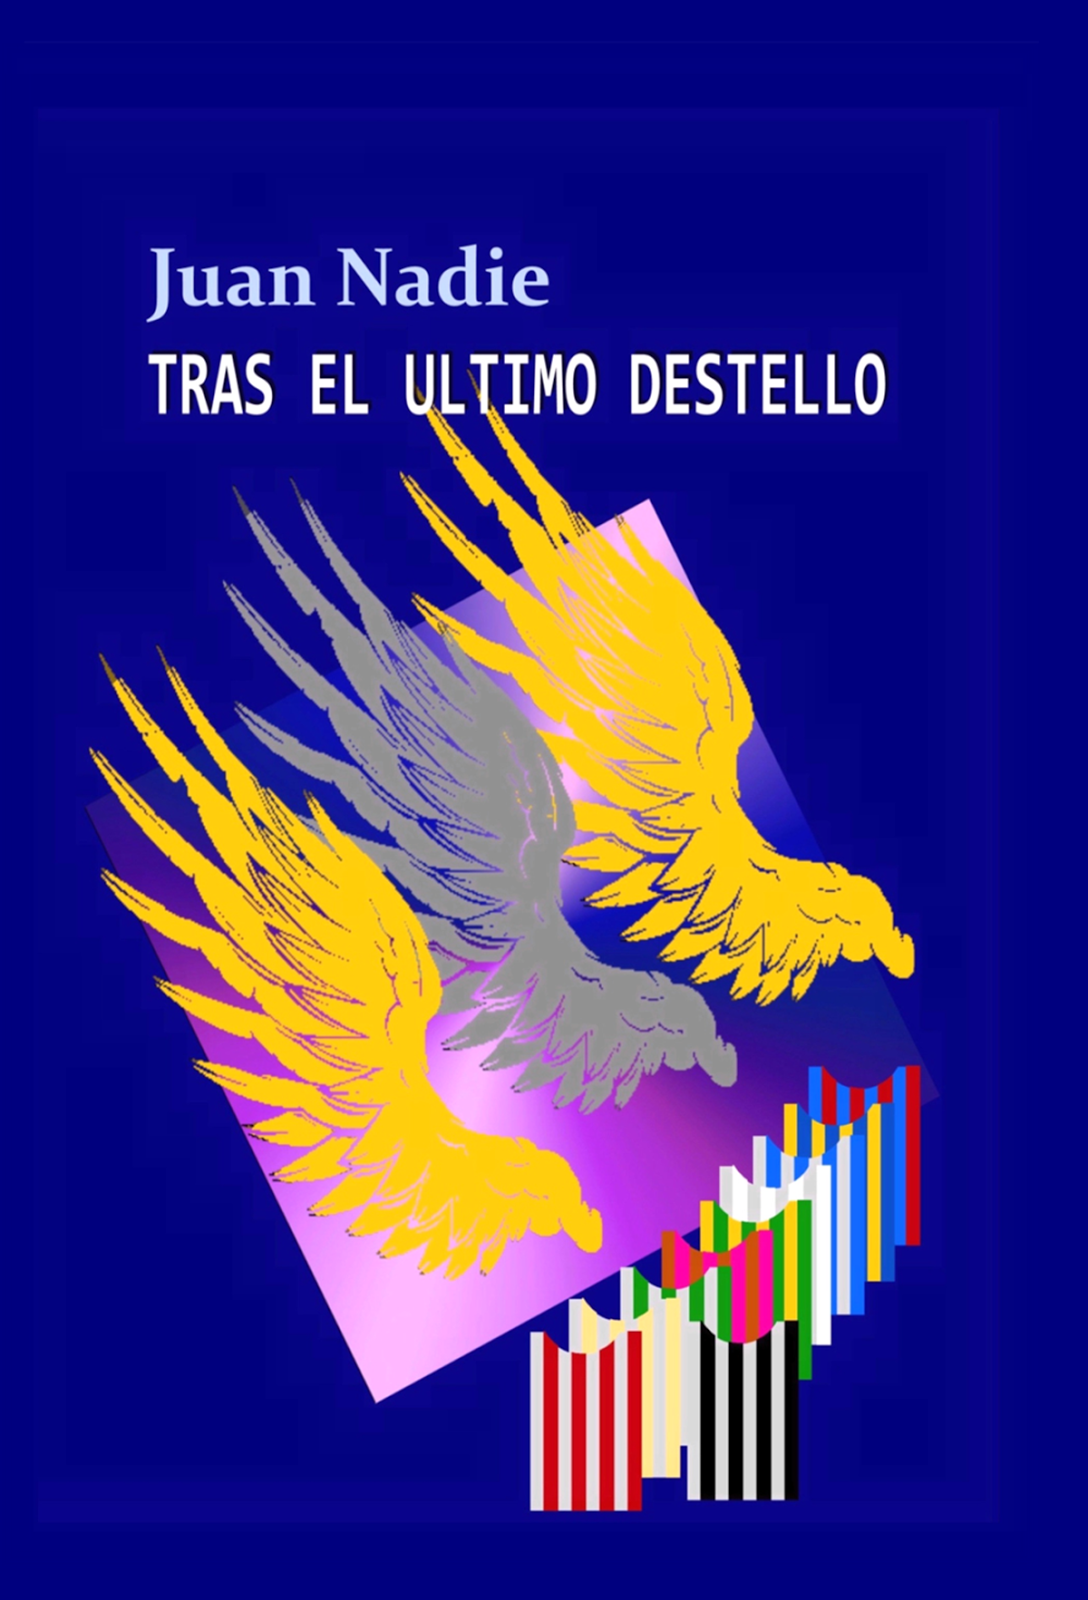 http://www.casadellibro.com/ebook-tras-el-ultimo-destello-ebook/9788461683680/2269782